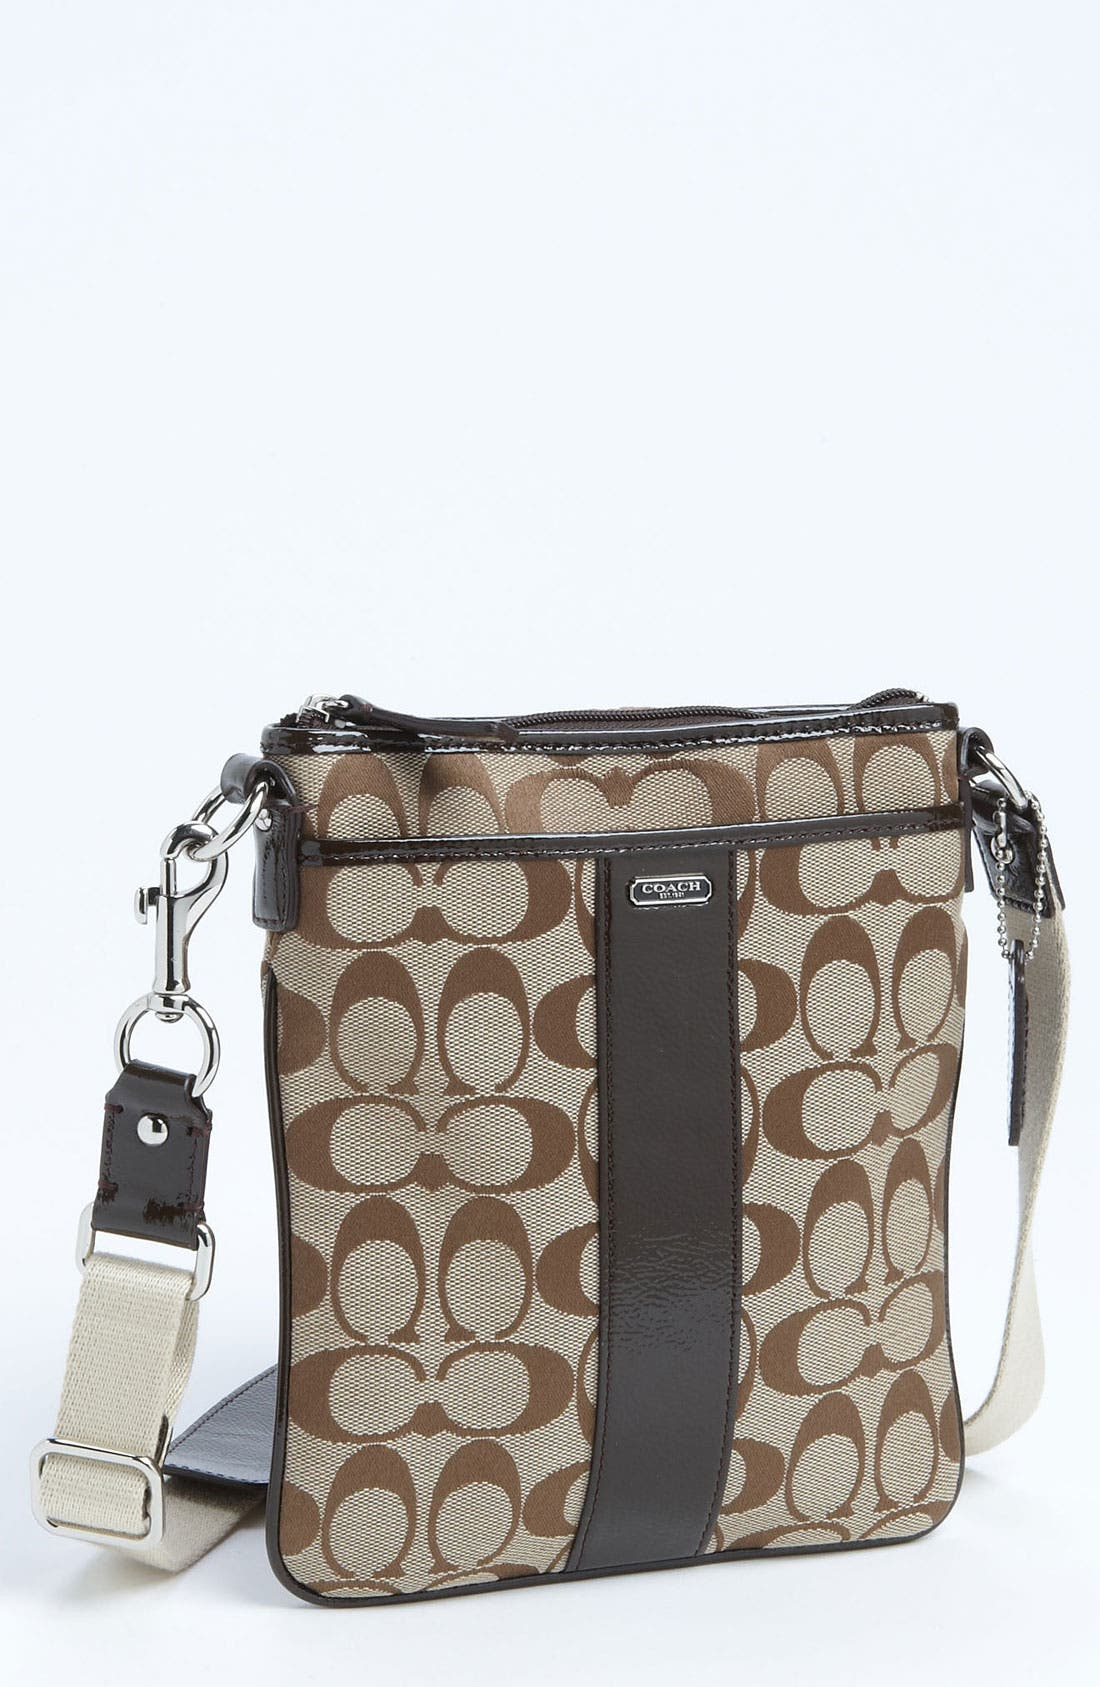 Main Image - COACH 'Signature - Swingpack' Crossbody Bag